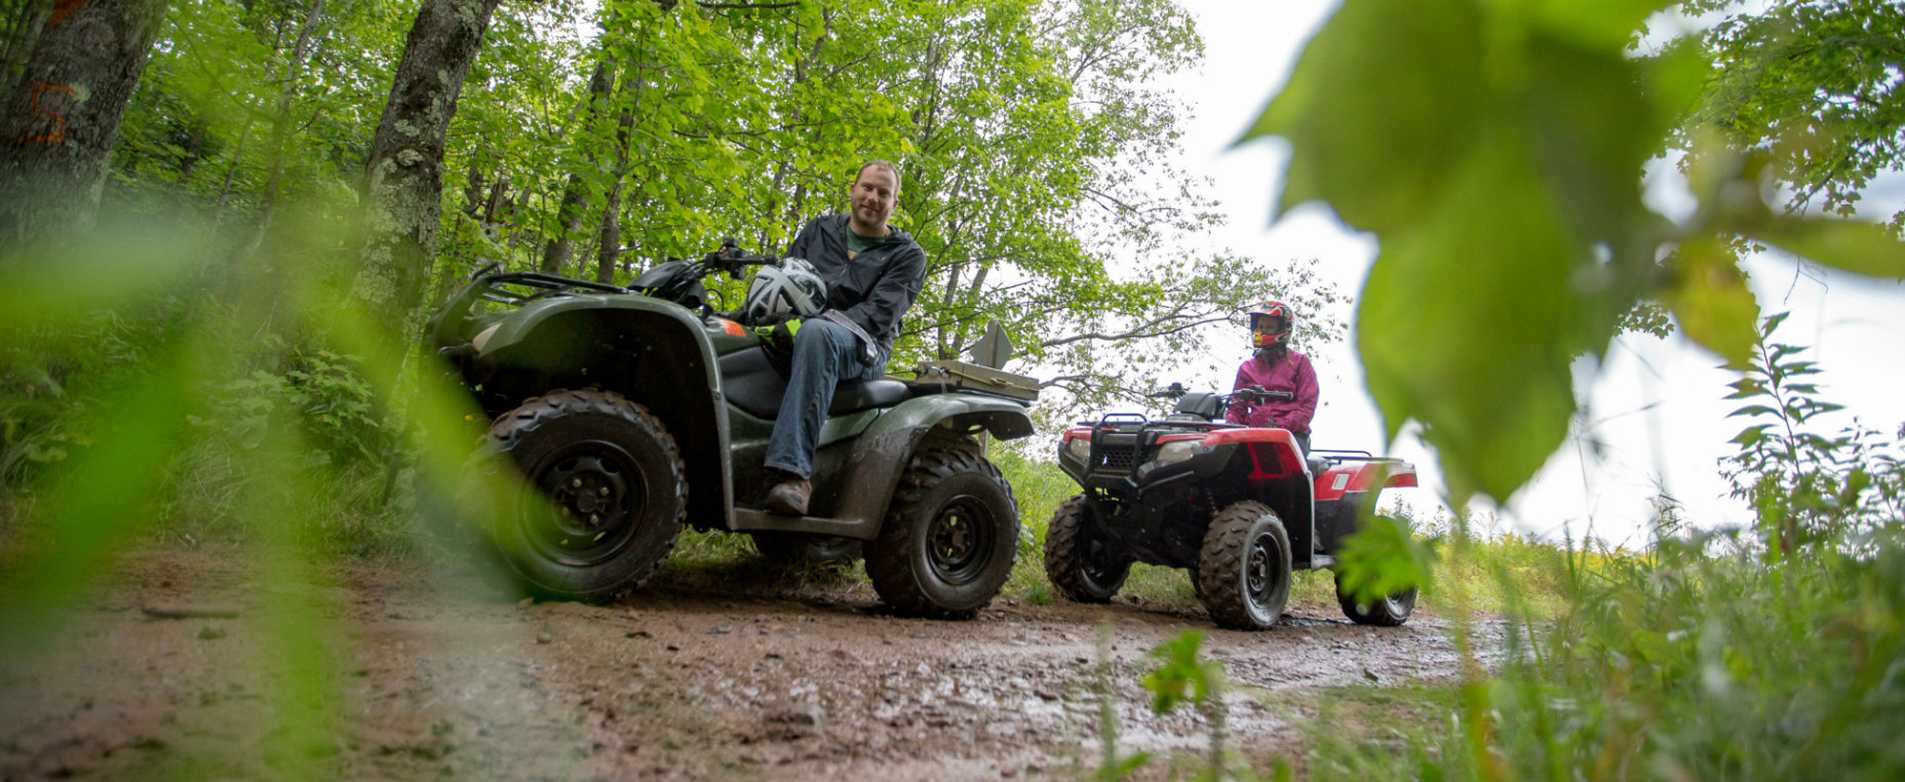 Couple ATVing on Dead Horse Trail